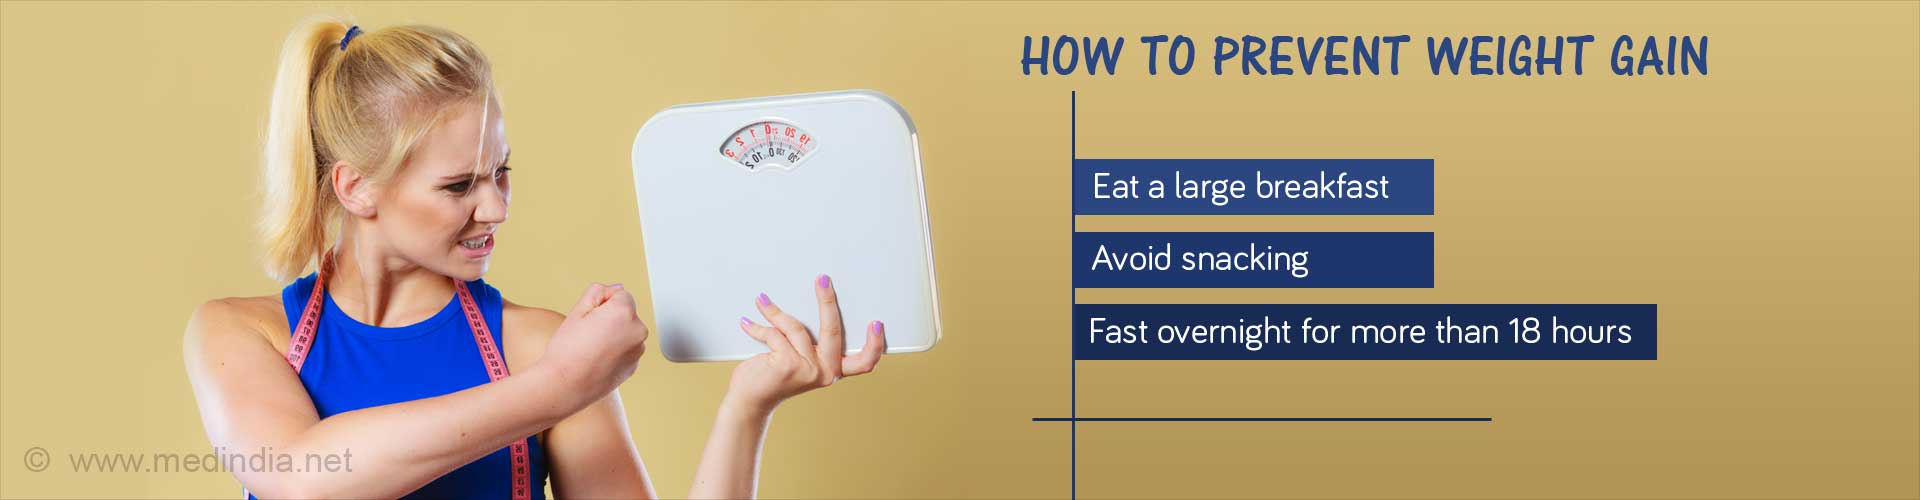 How to Prevent Weight Gain